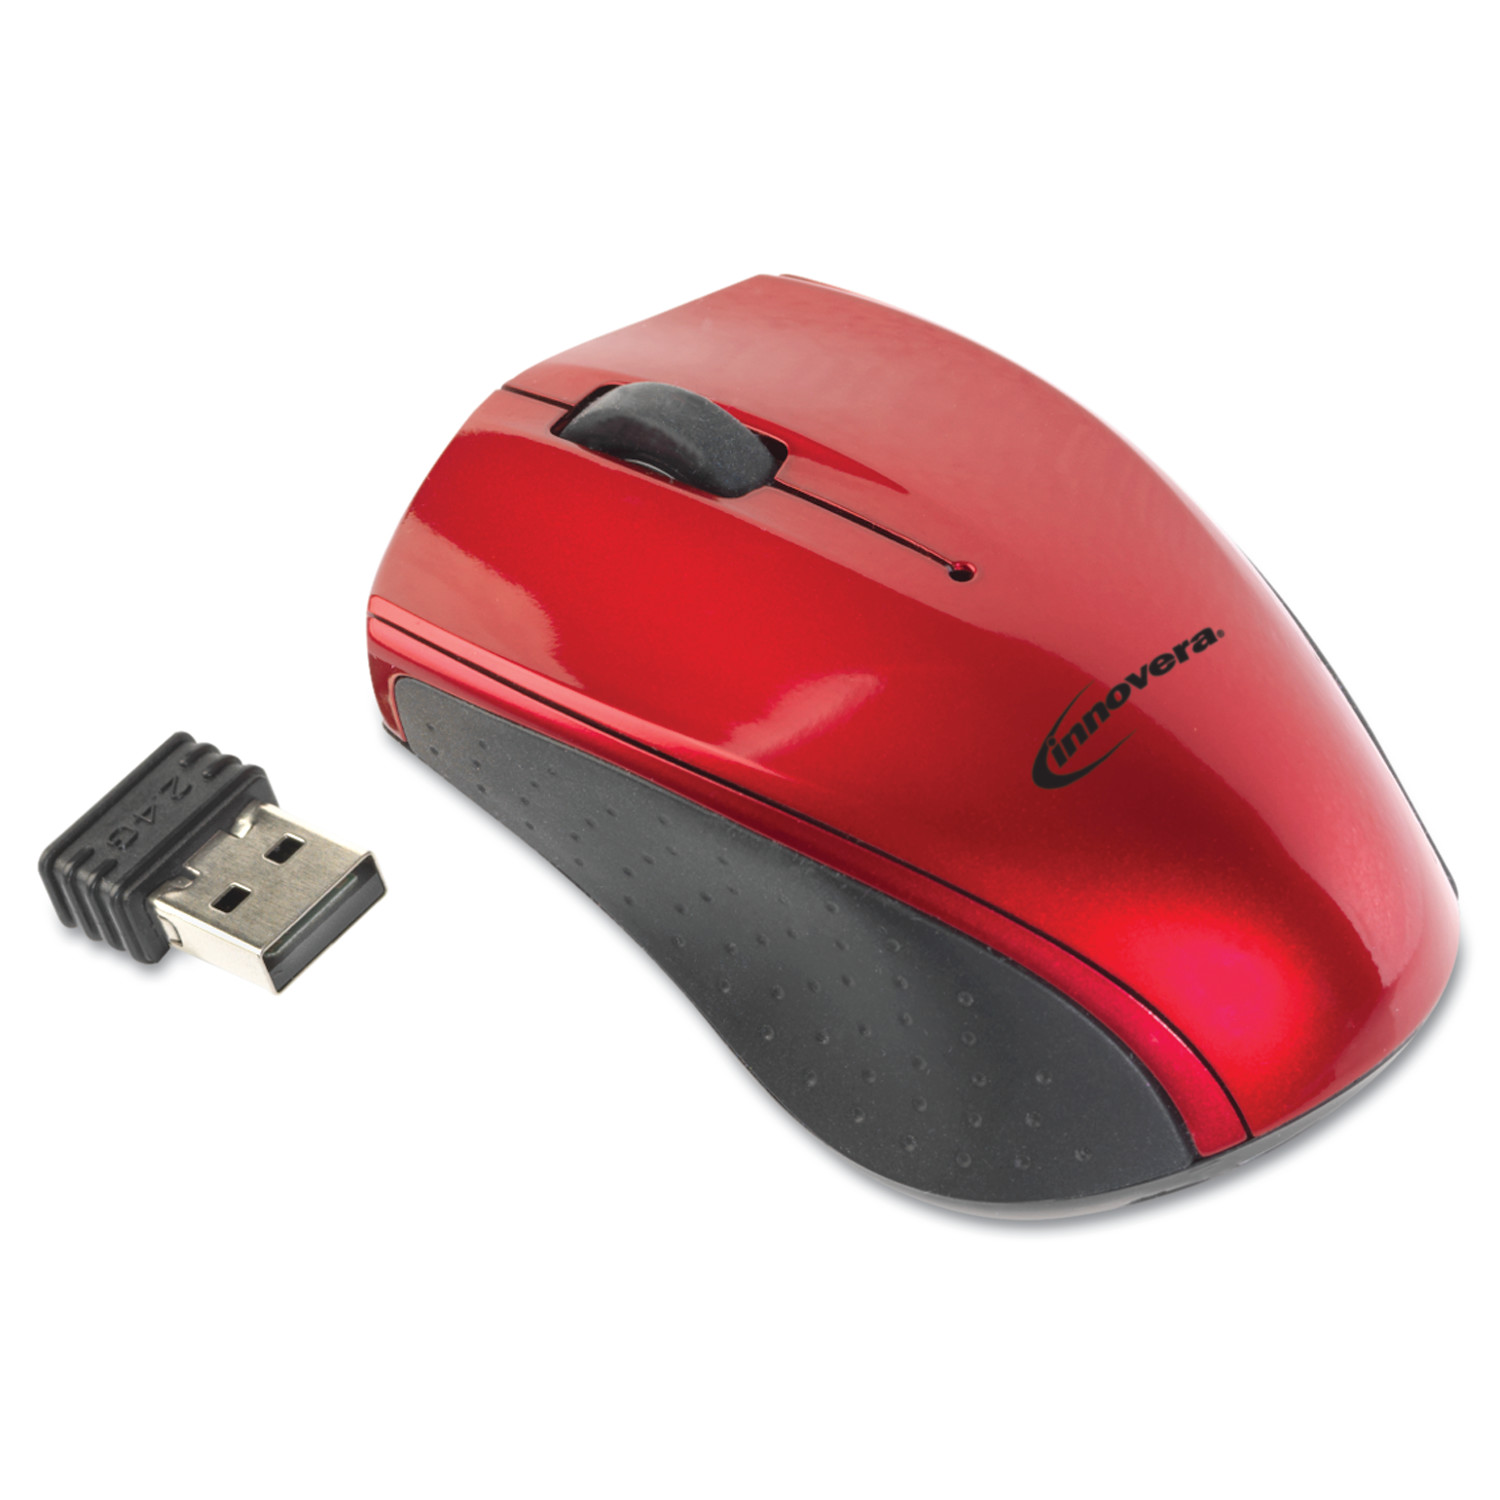 Innovera Mini Wireless Optical Mouse, 3 Buttons, Red/Black